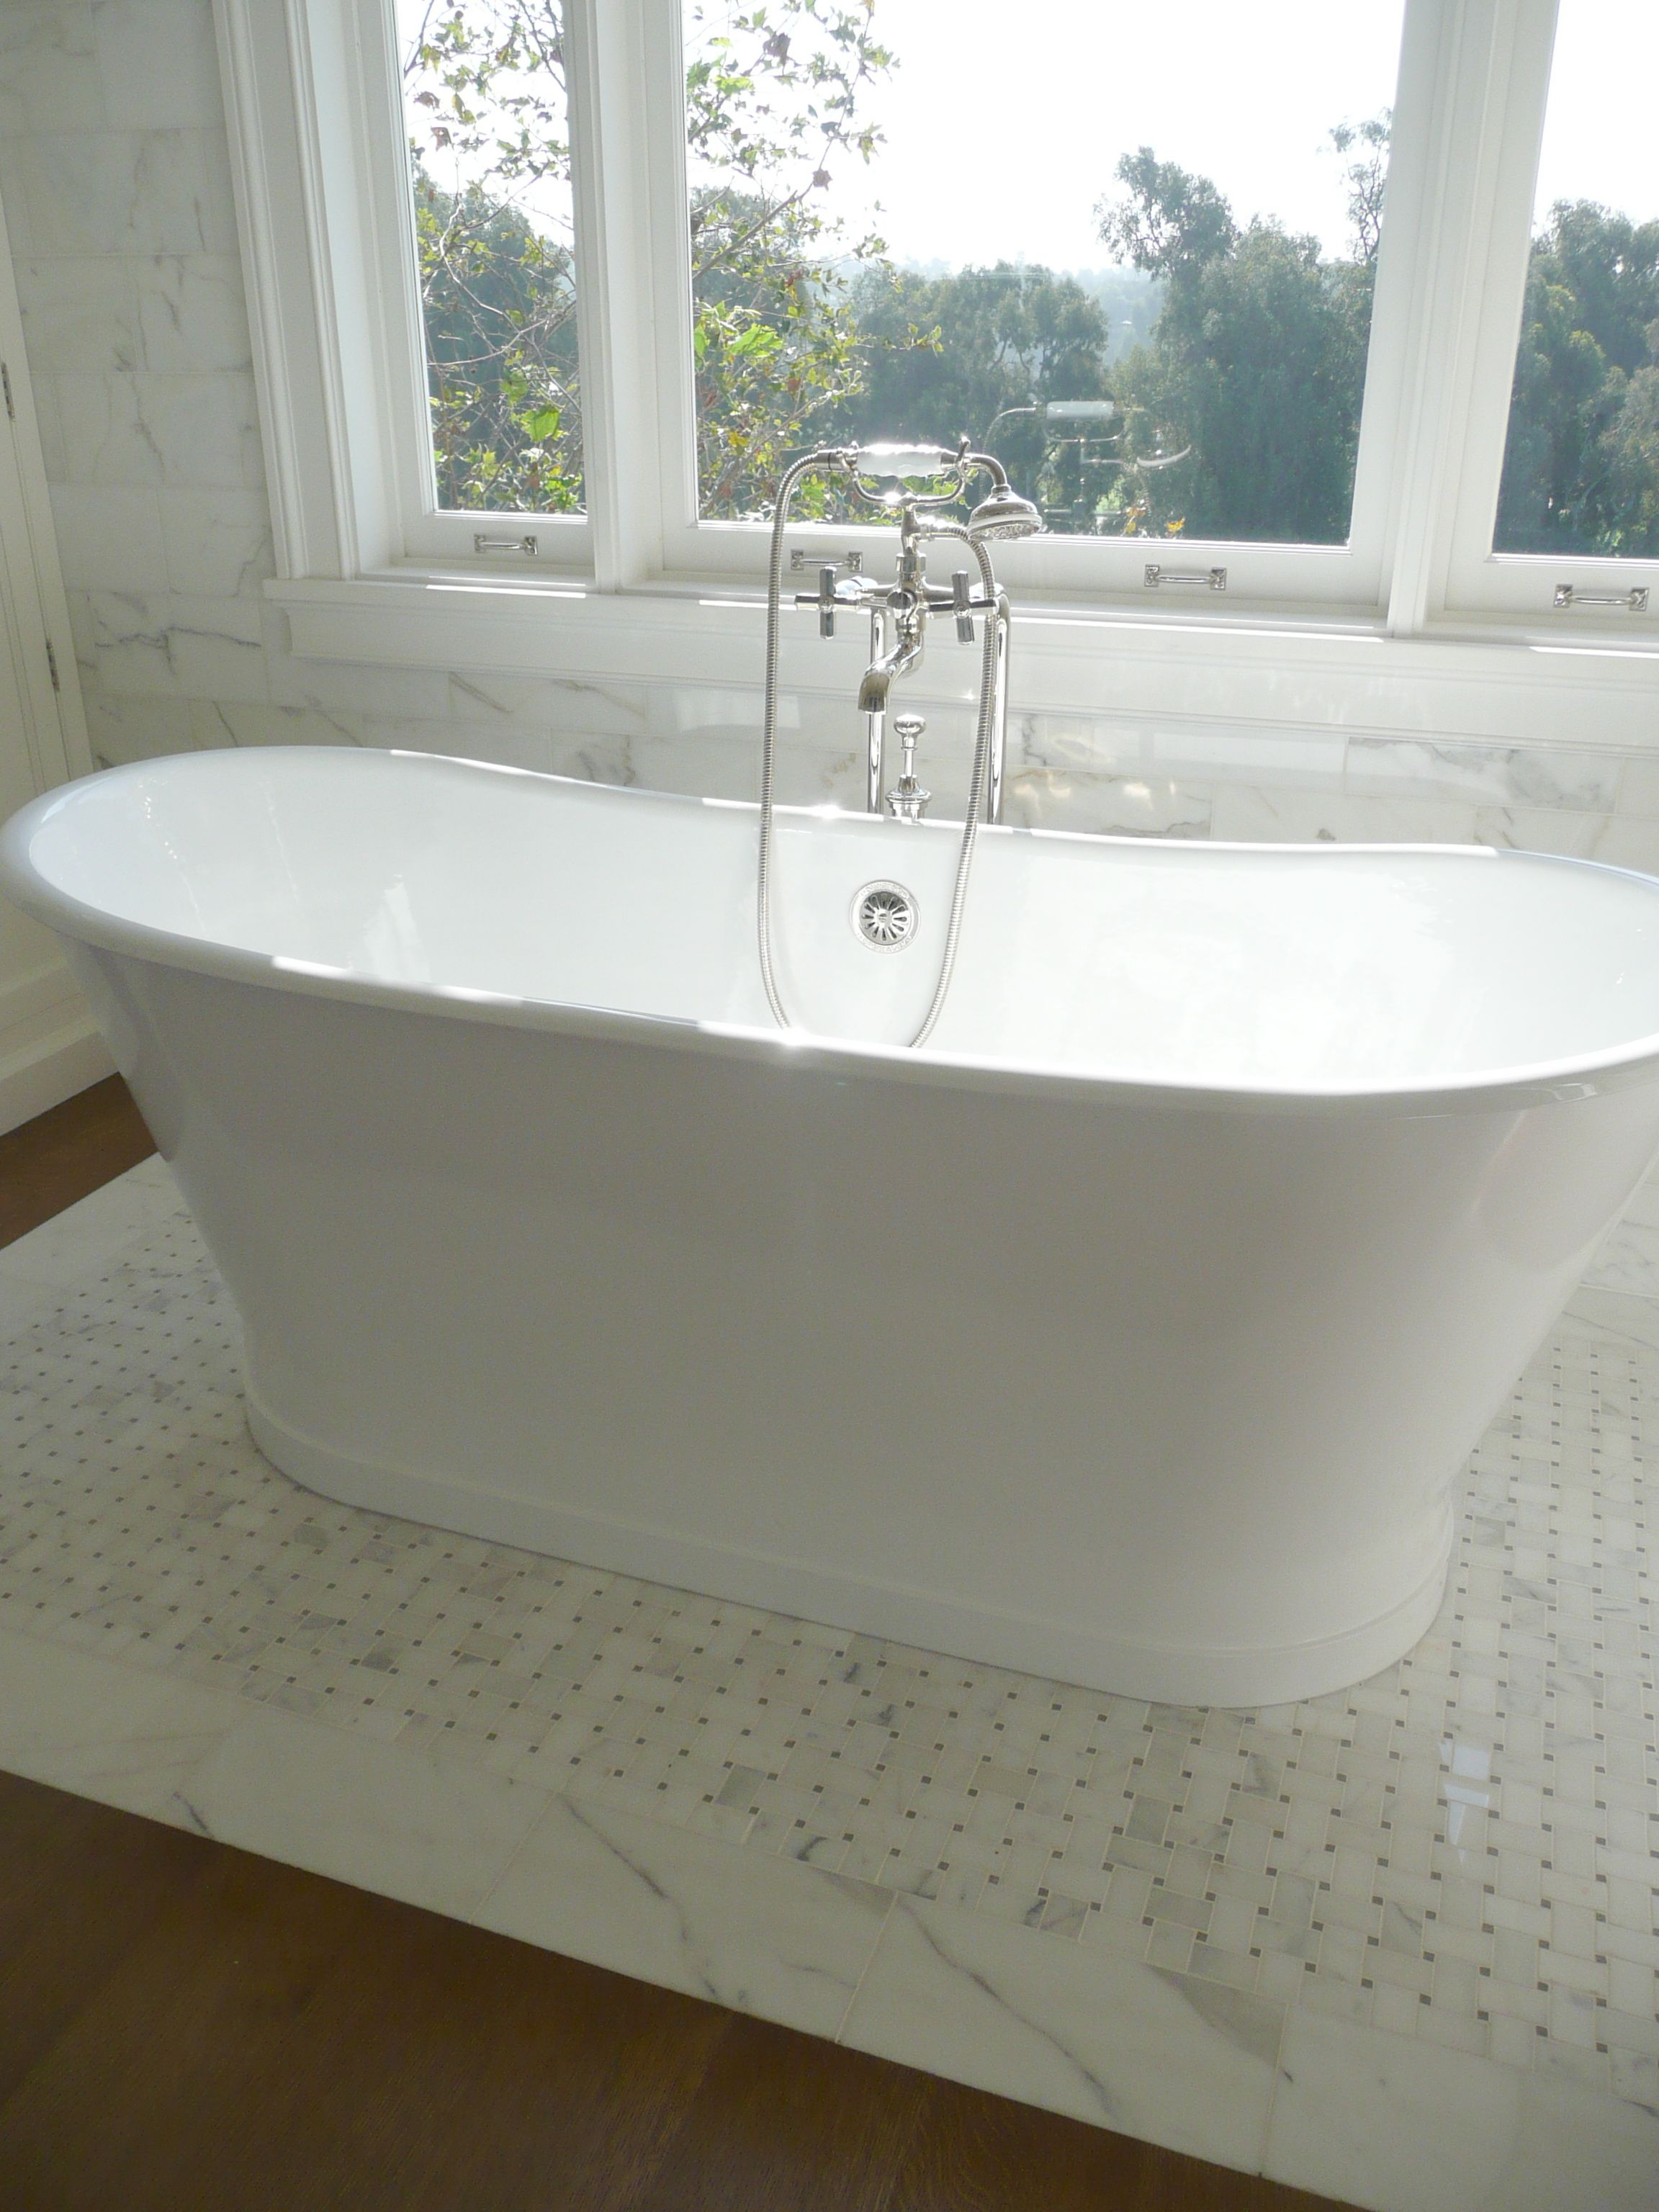 Freestanding Tub In Front Of Window Traditional Bathroom Free